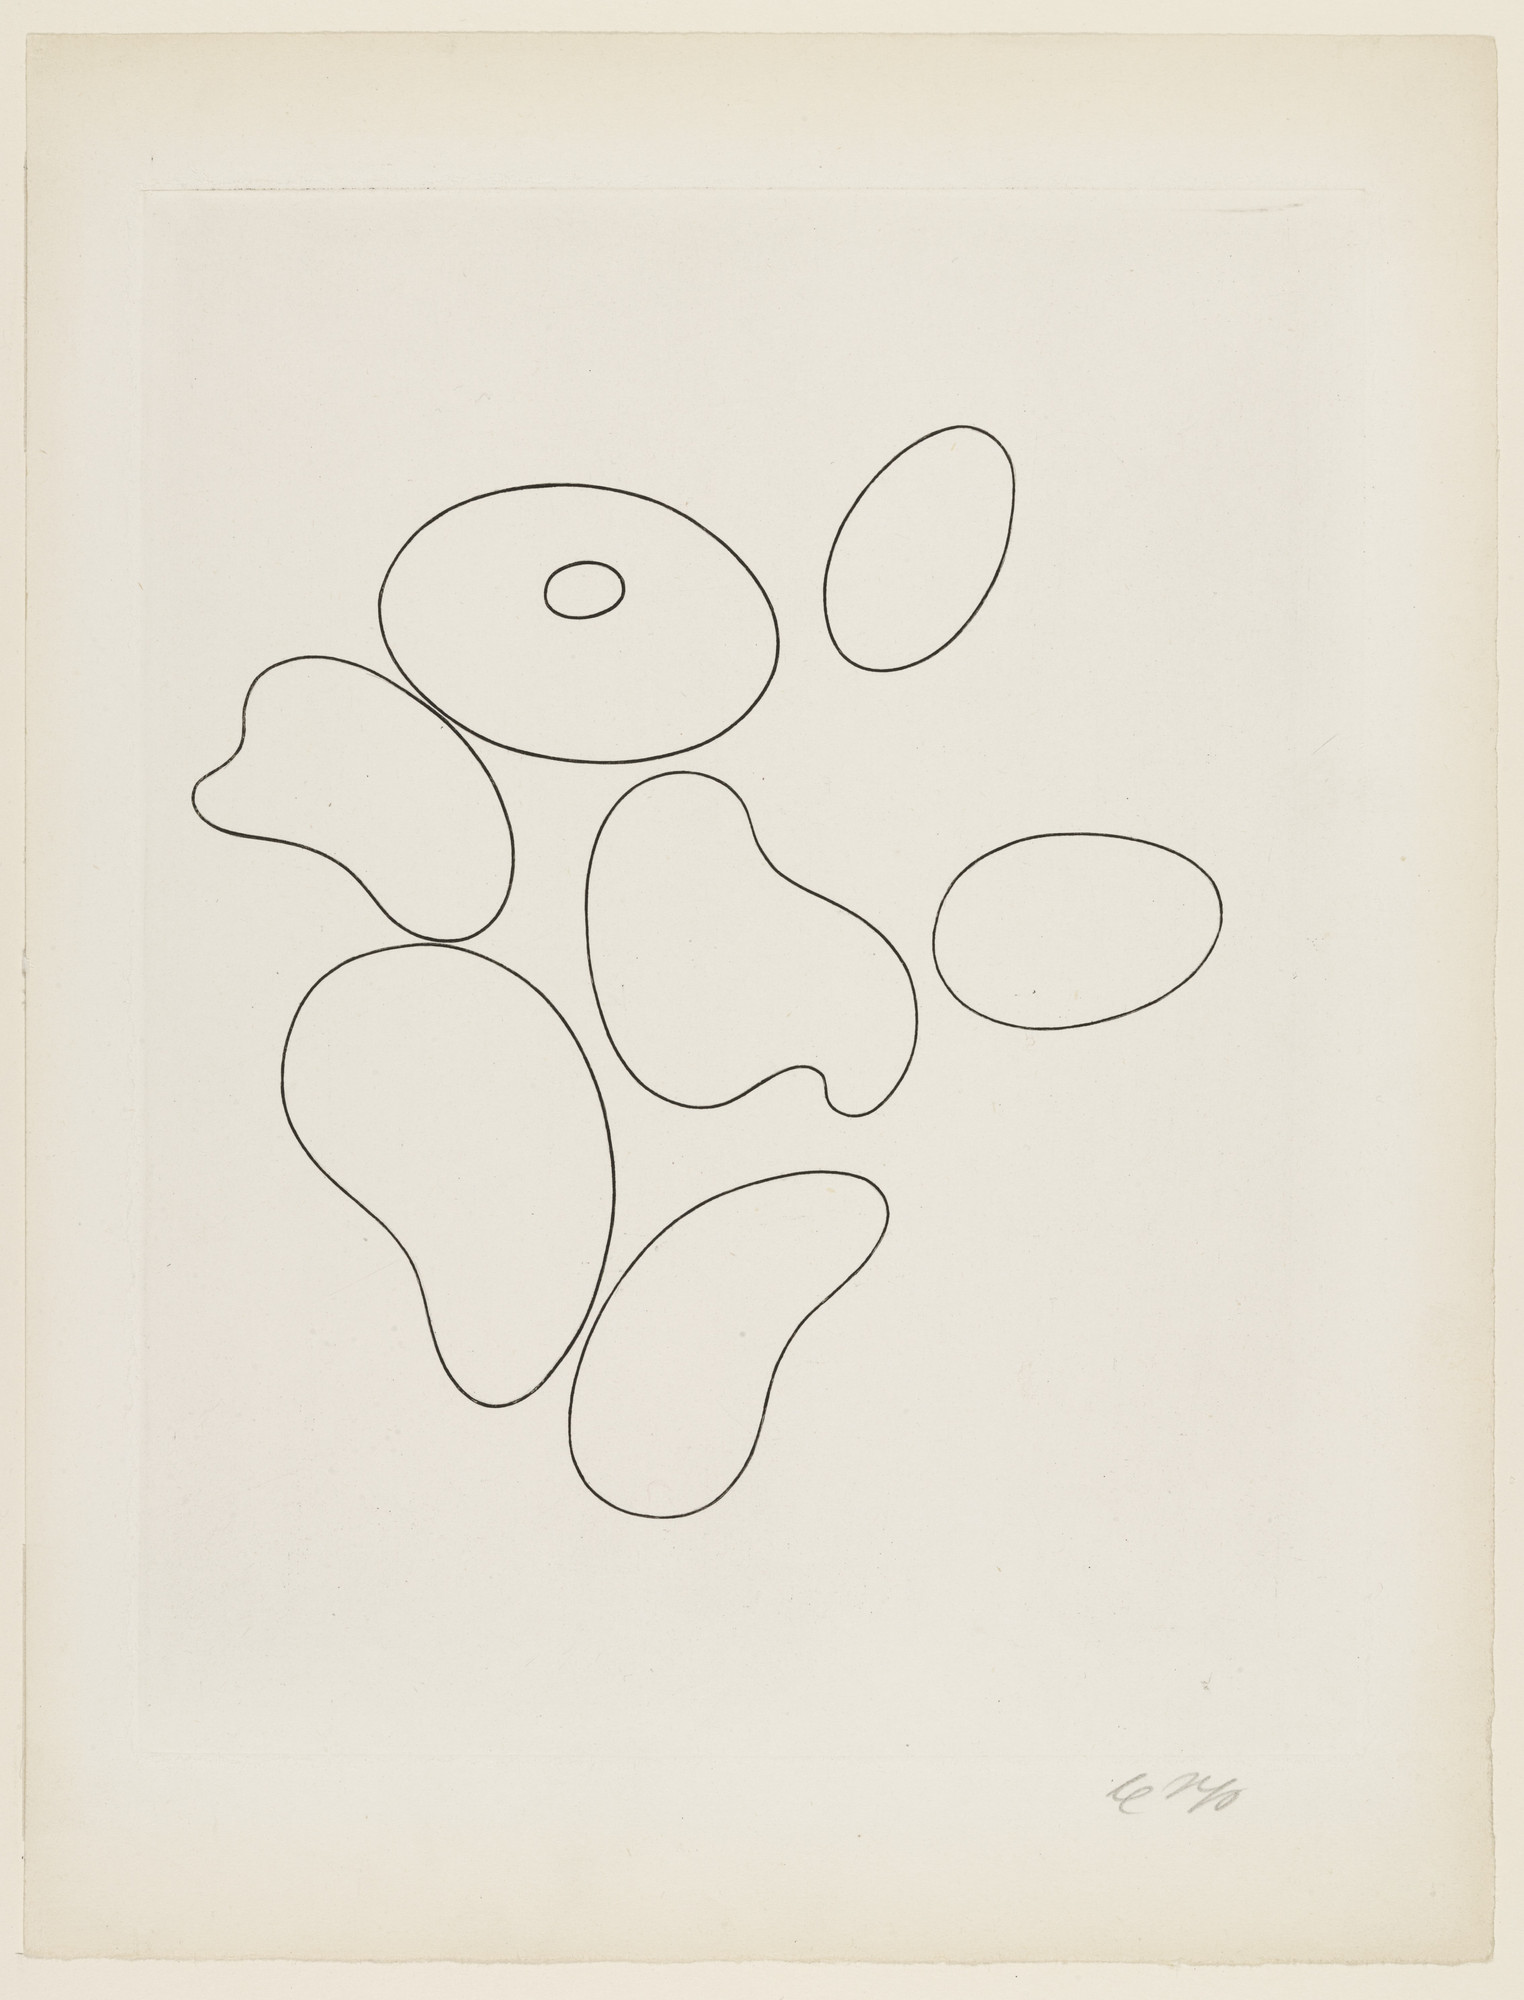 Jean (Hans) Arp. Composition with Seven Elements (plate, folio 5) from 23 Gravures. 1935